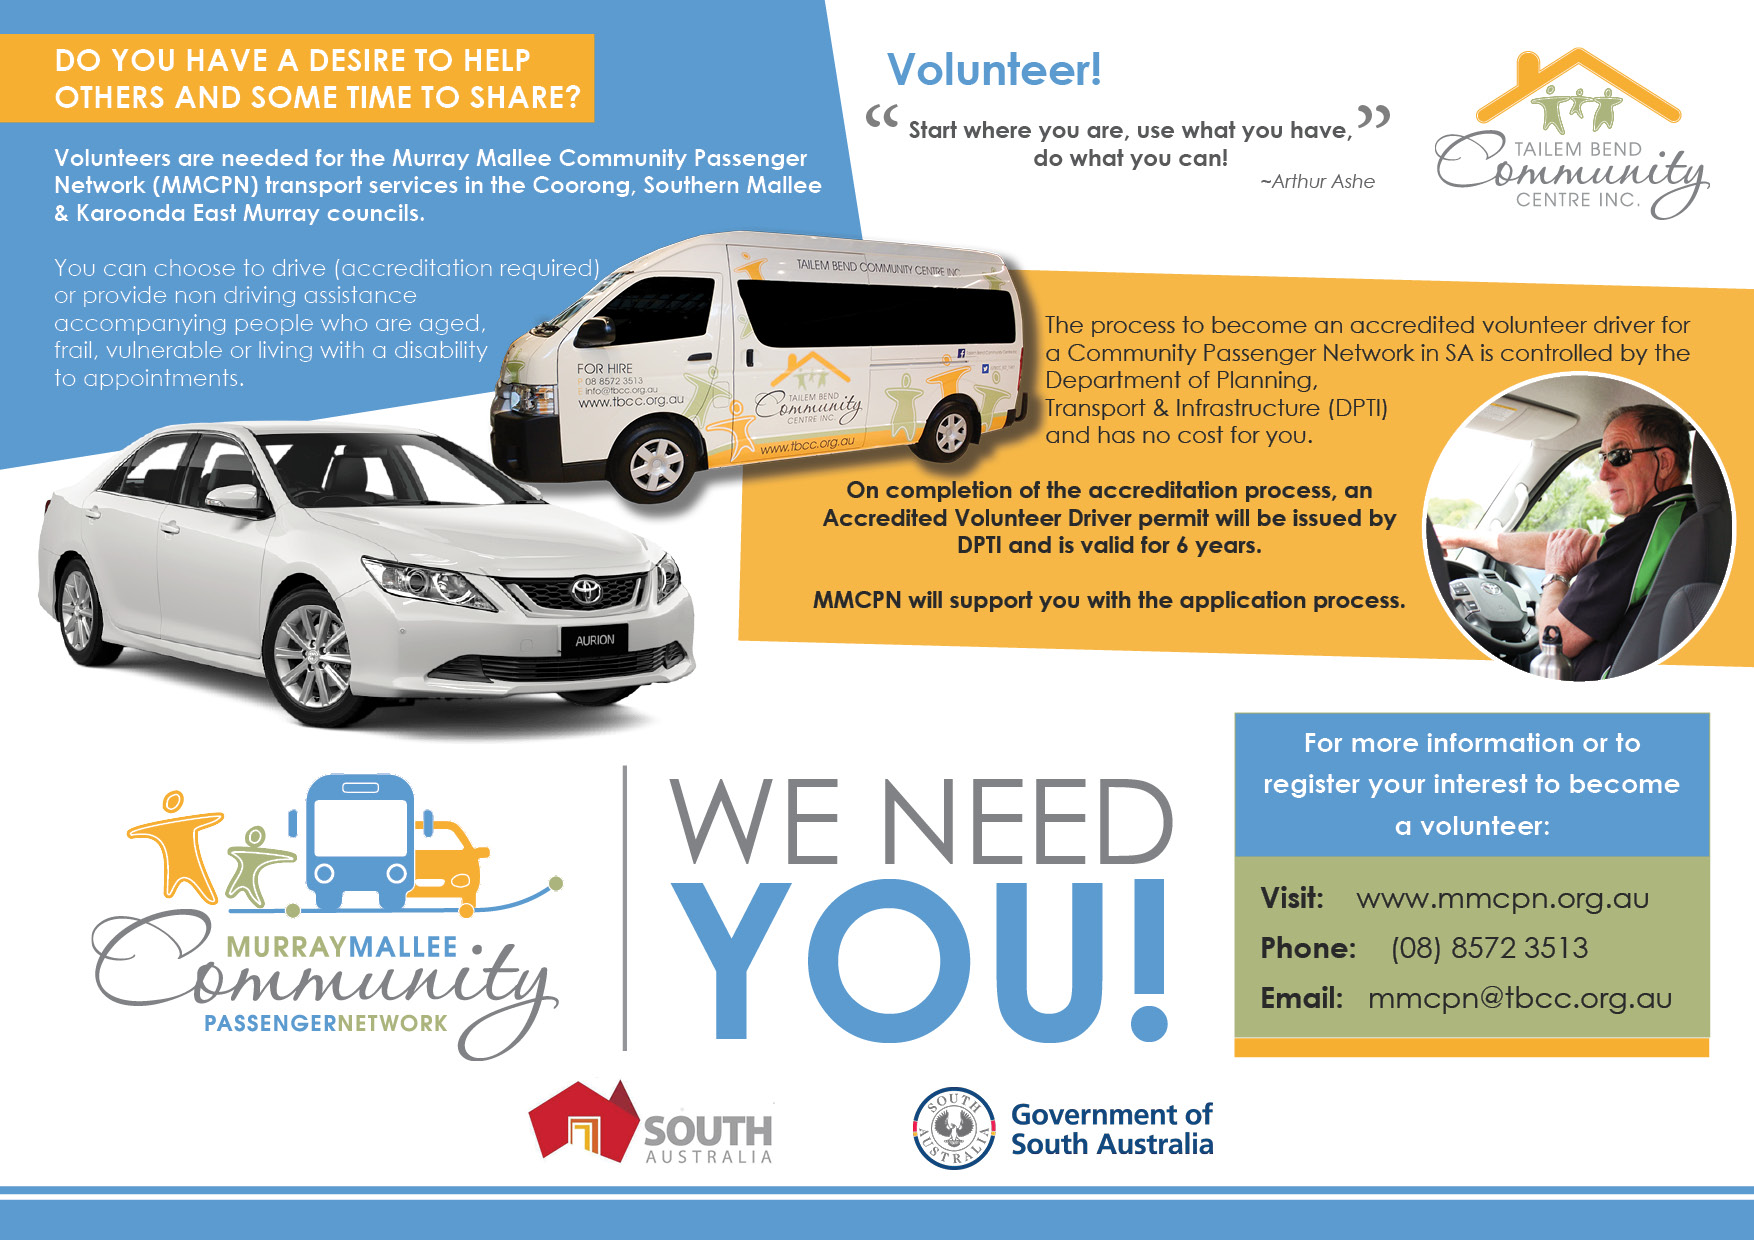 Murray Mallee Community Passenger Network needs volunteer drivers